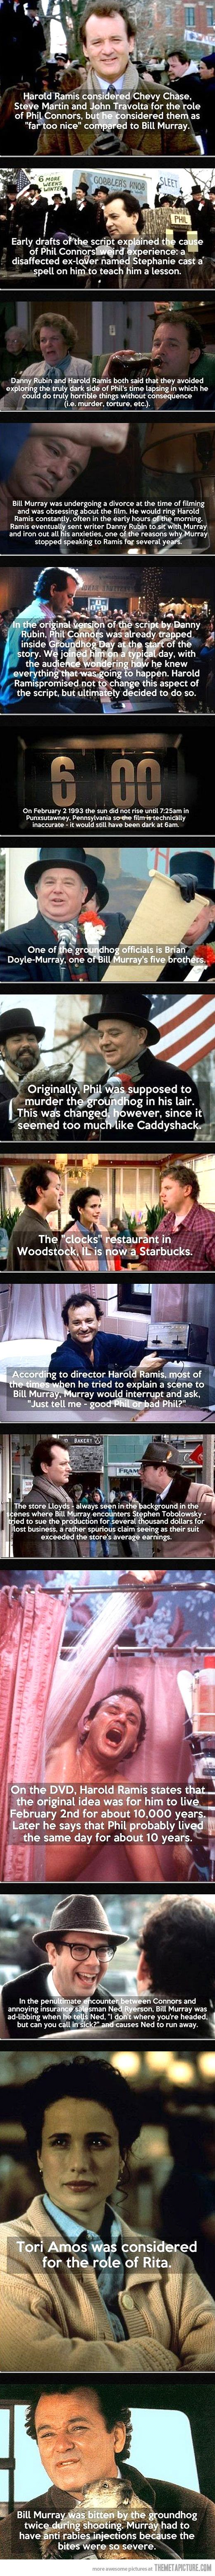 Groundhog Day Interesting Facts. If you have not seen this movie, you need to do so.